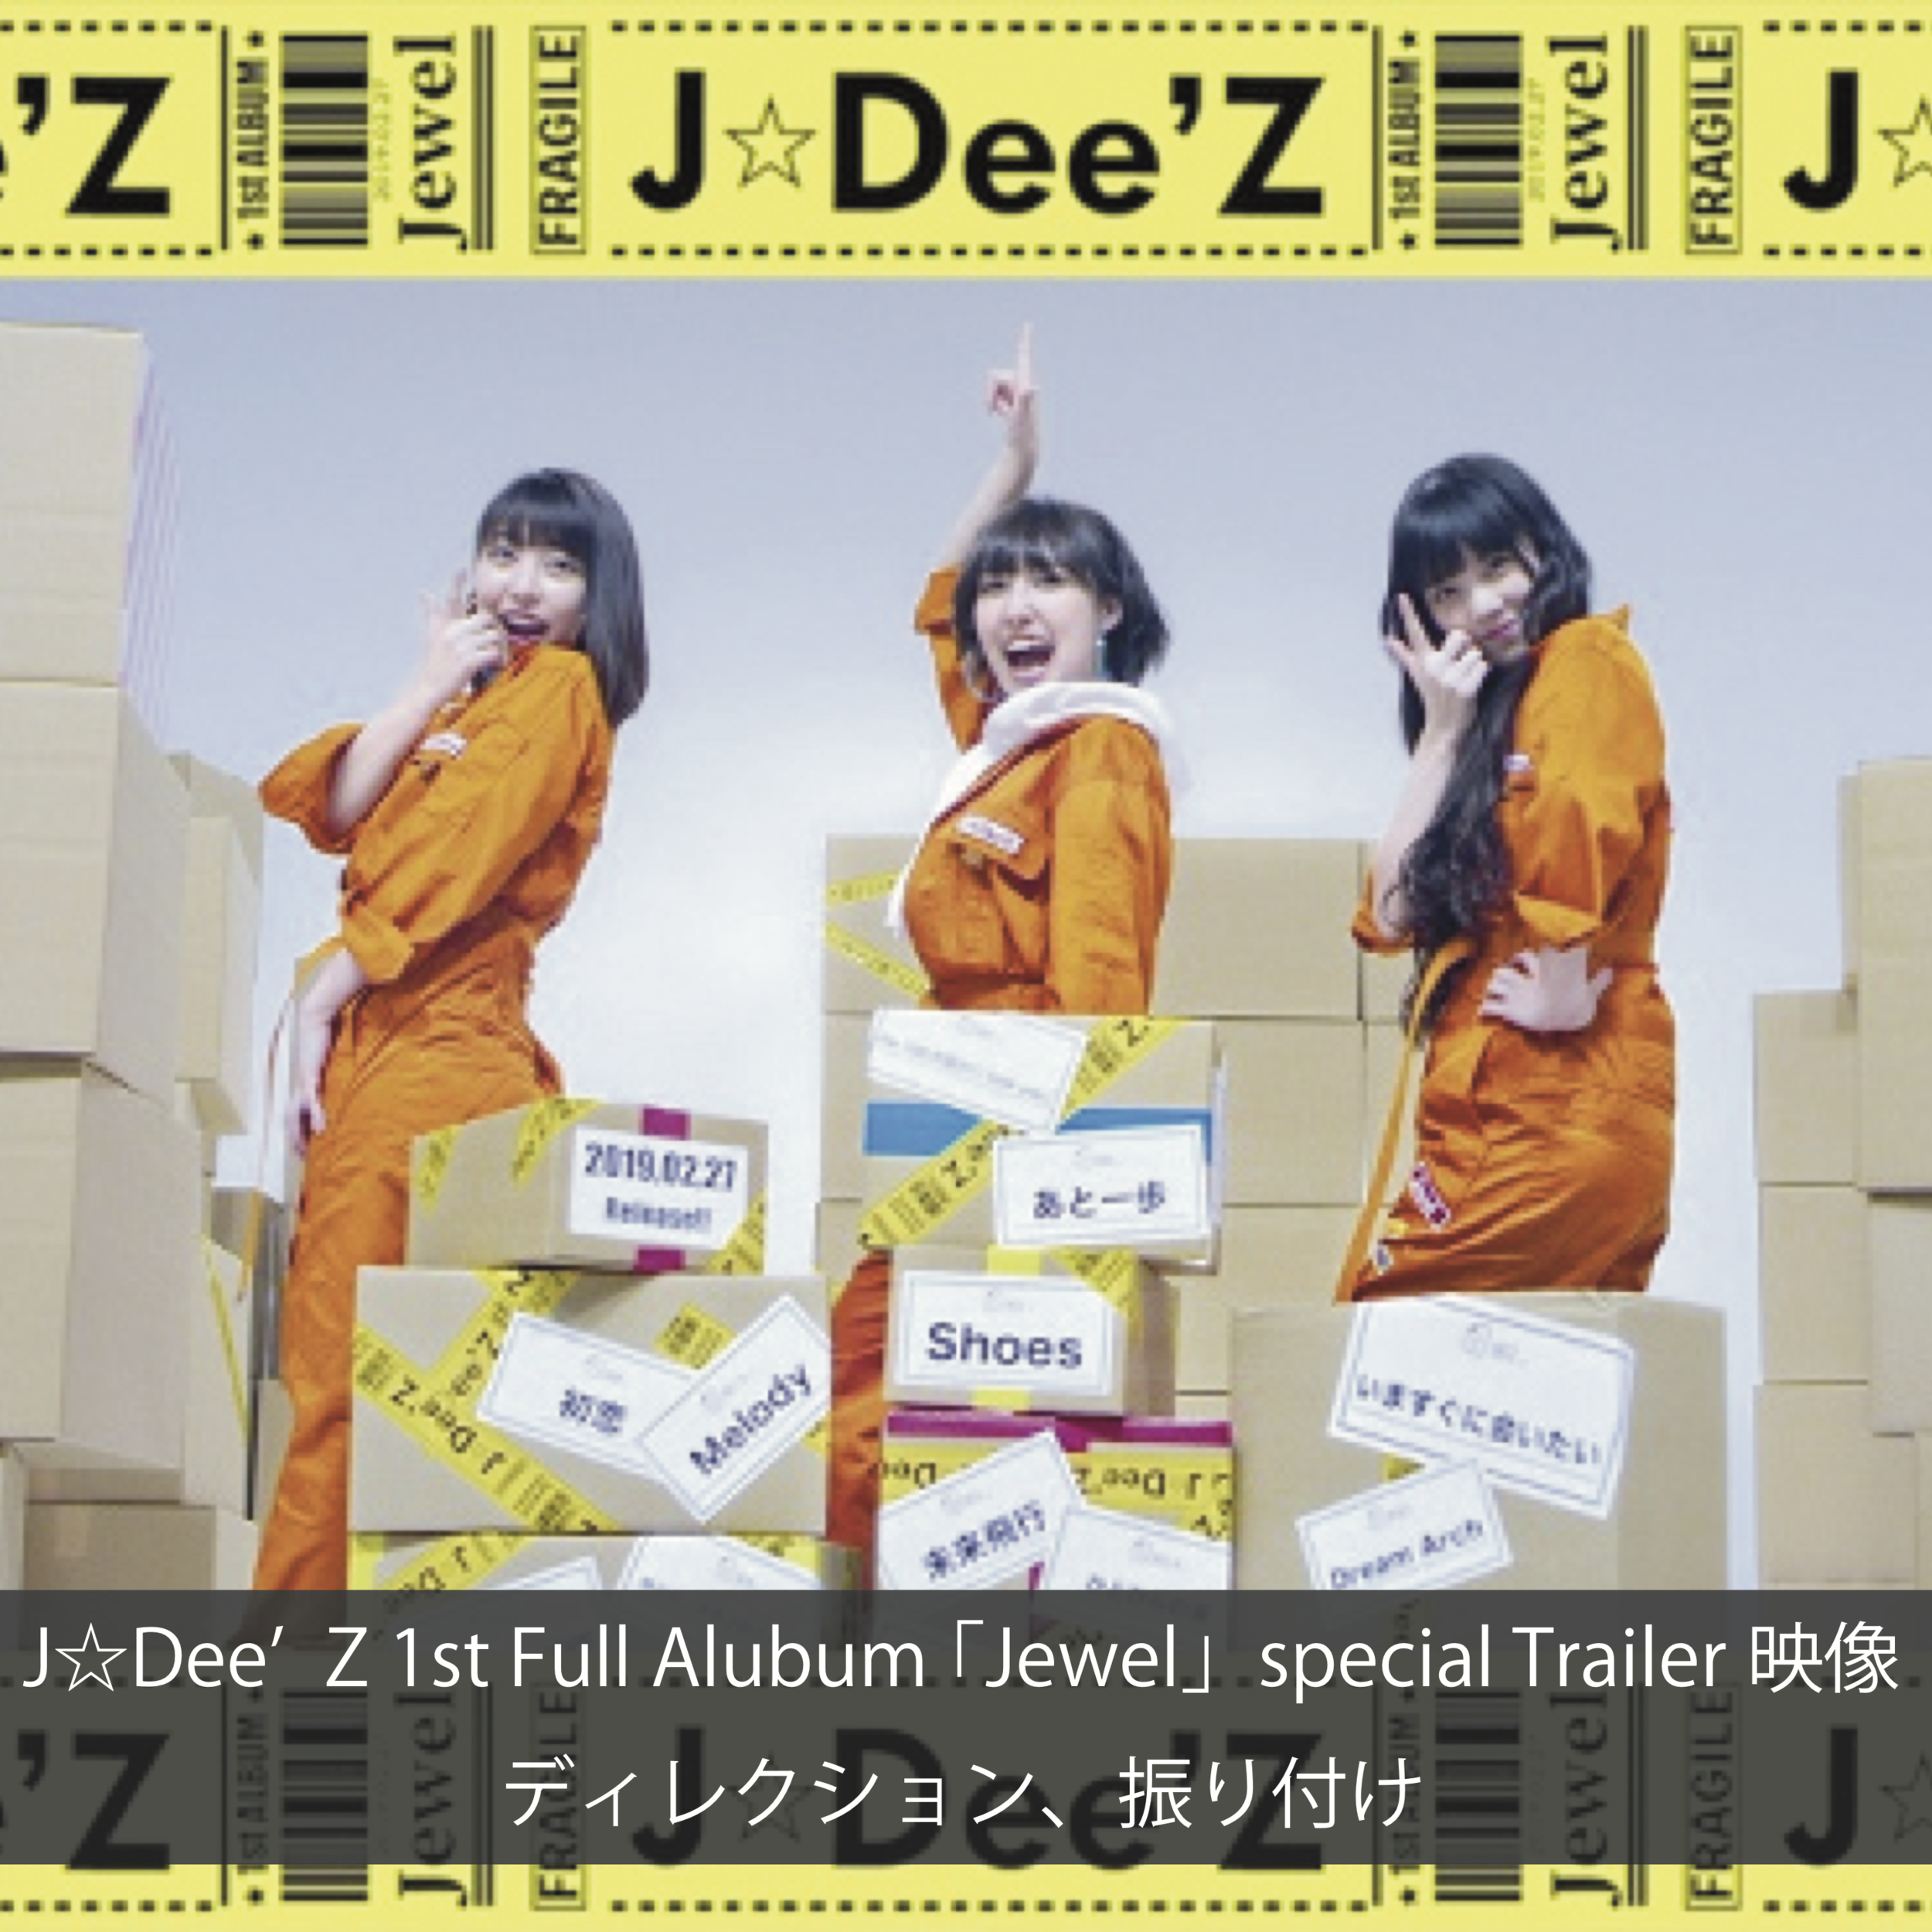 J☆Dee'Z 1st full alubum Jewel Trailer.png